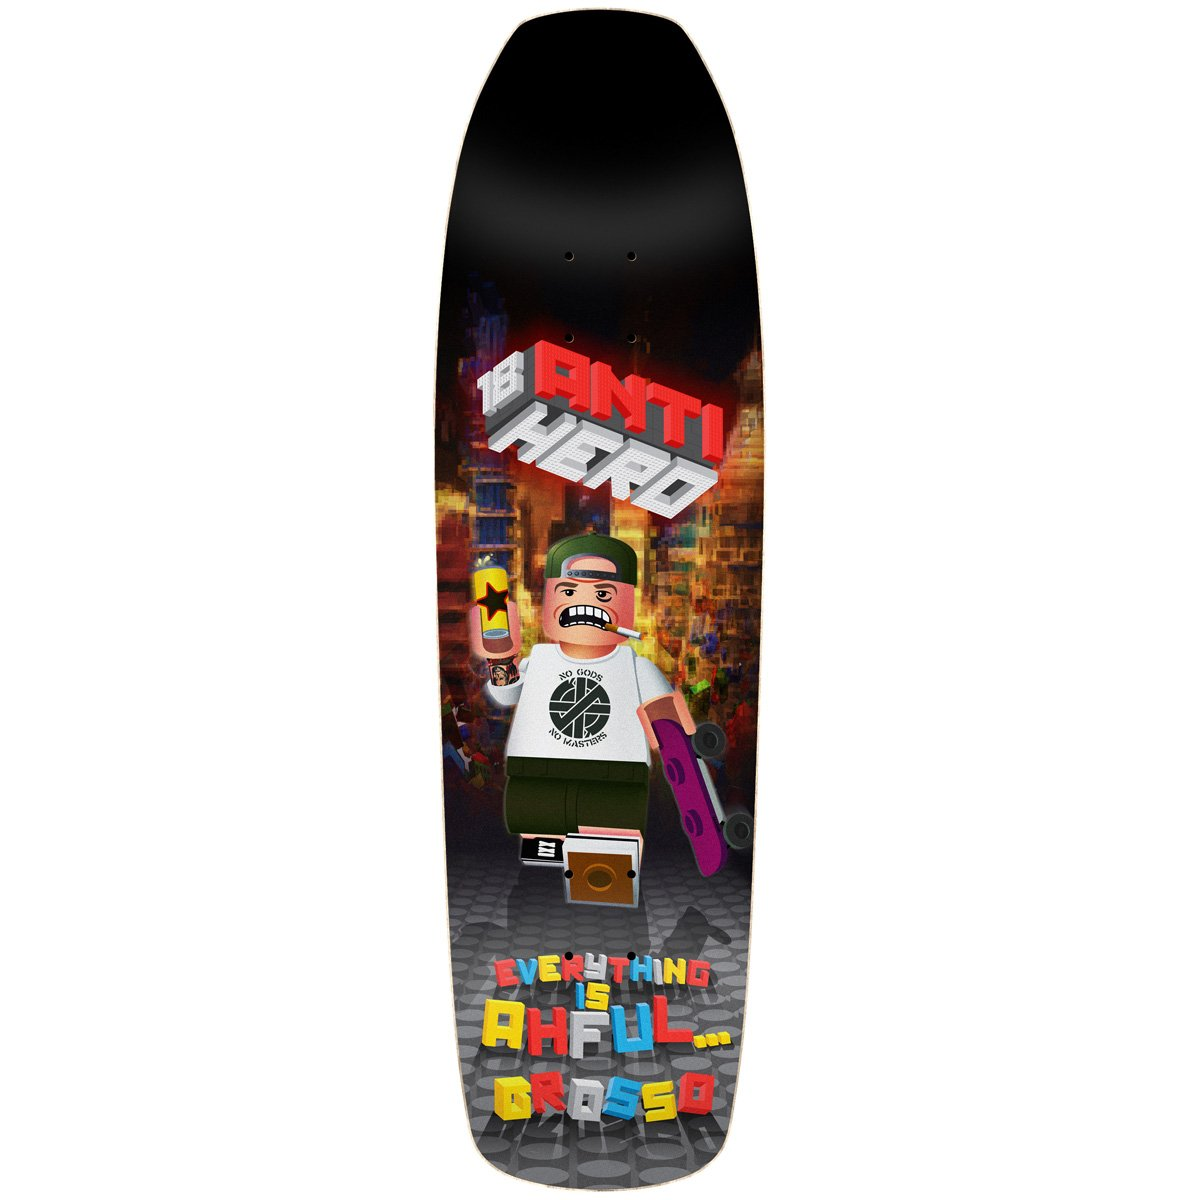 ANTIHERO EVERYTHING AHFUL GROSSO DECK - 9.2